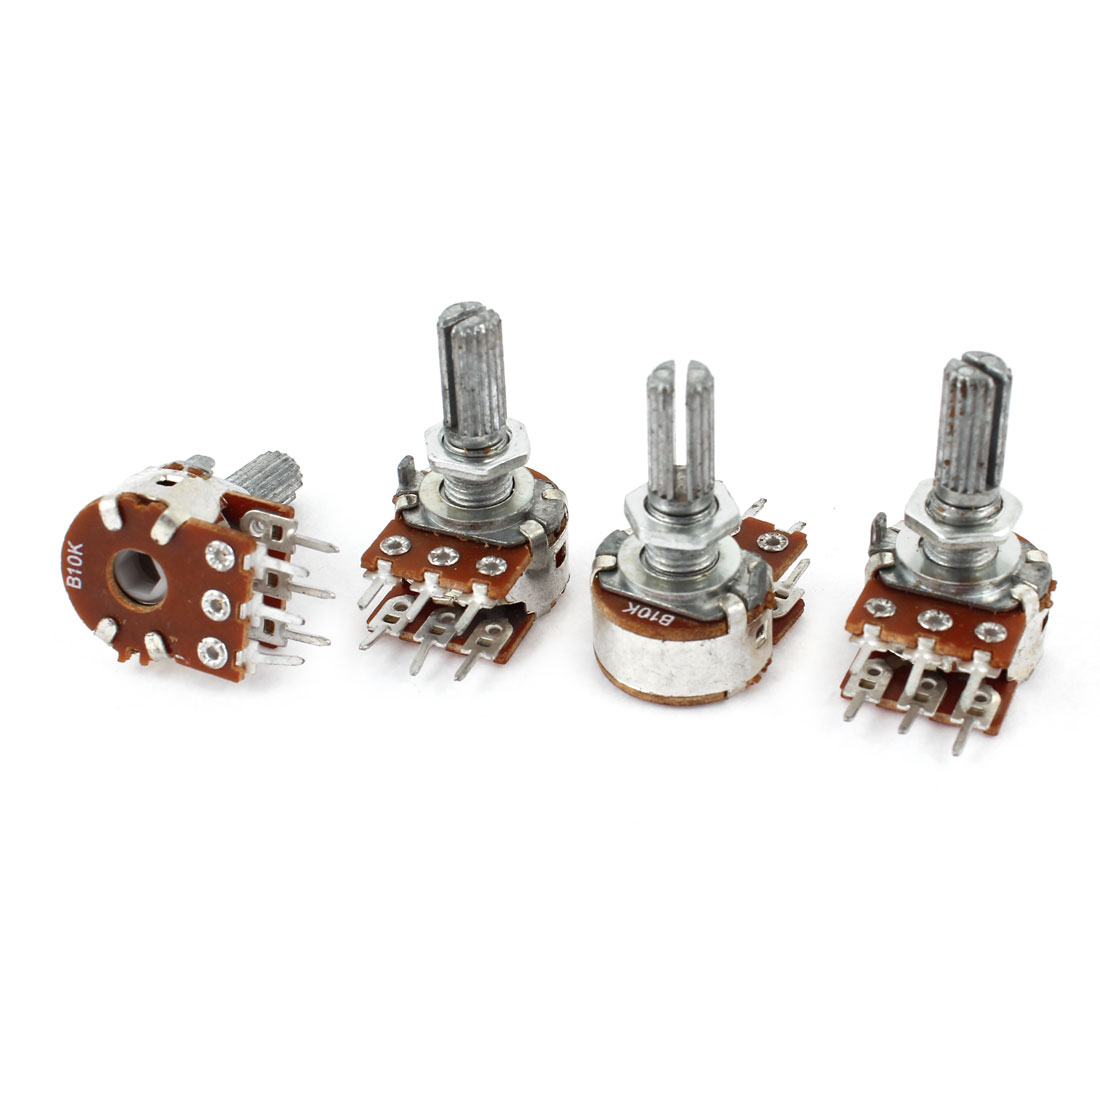 4Pcs 10K Ohm 20mm Shaft B Type Linear Dual Rotary Rotatable Taper Potentiometer